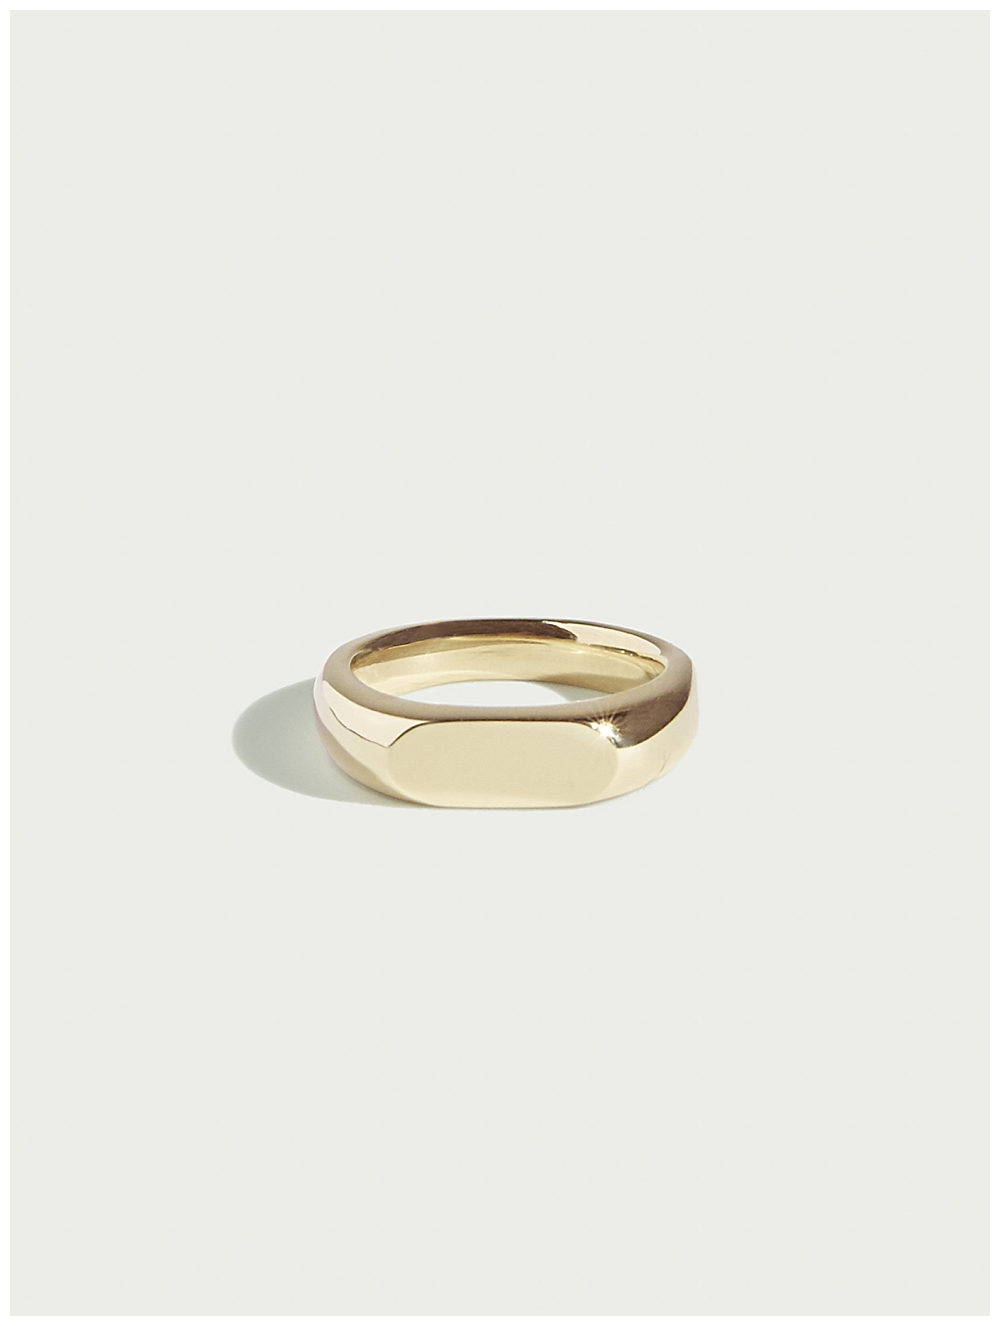 unisex-engagement-rings-10